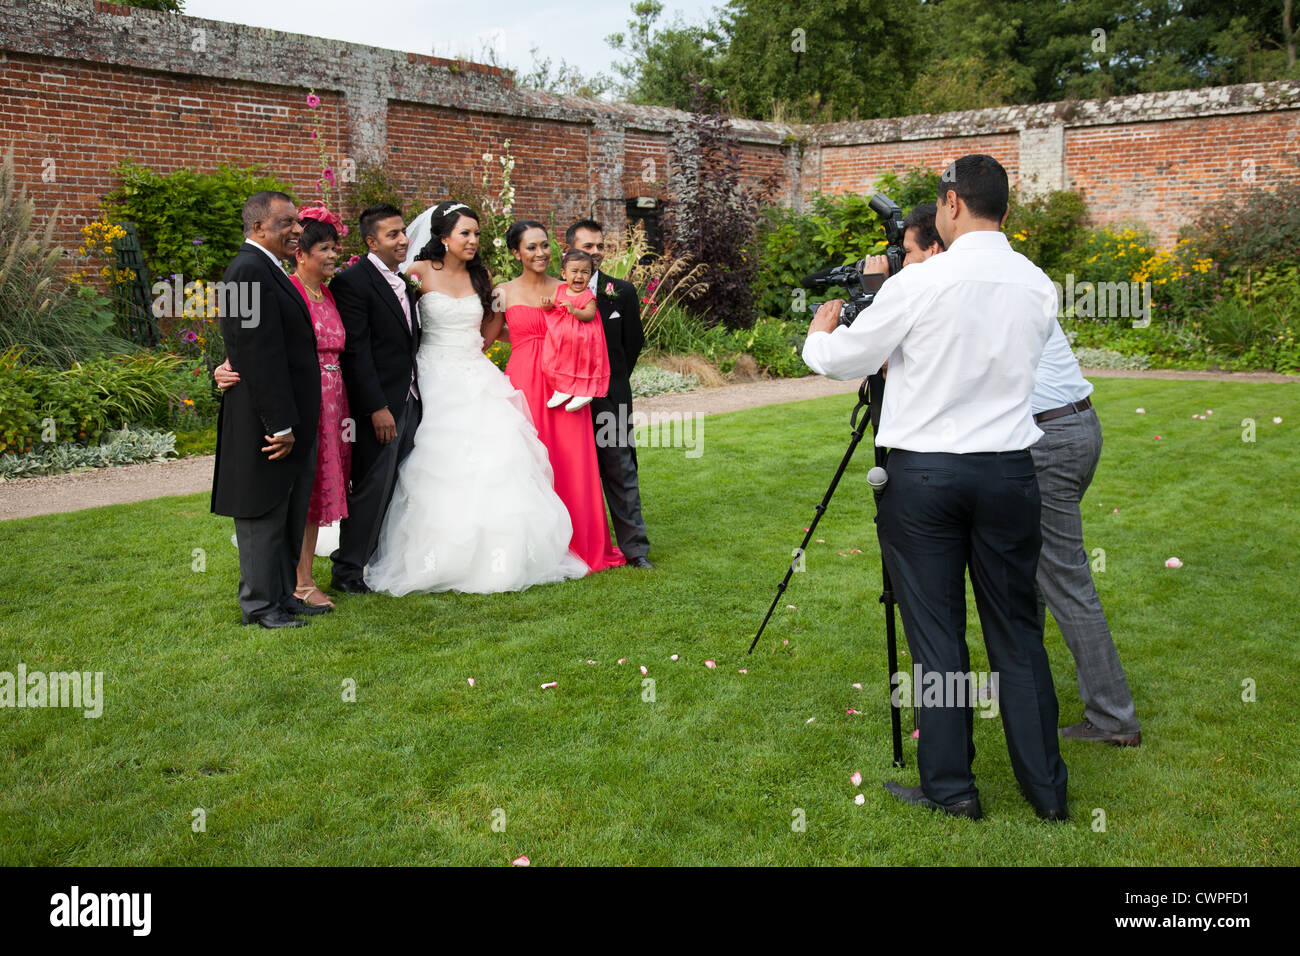 Dressing Point P Wedding Photographer Taking Pictures Of The Bride And